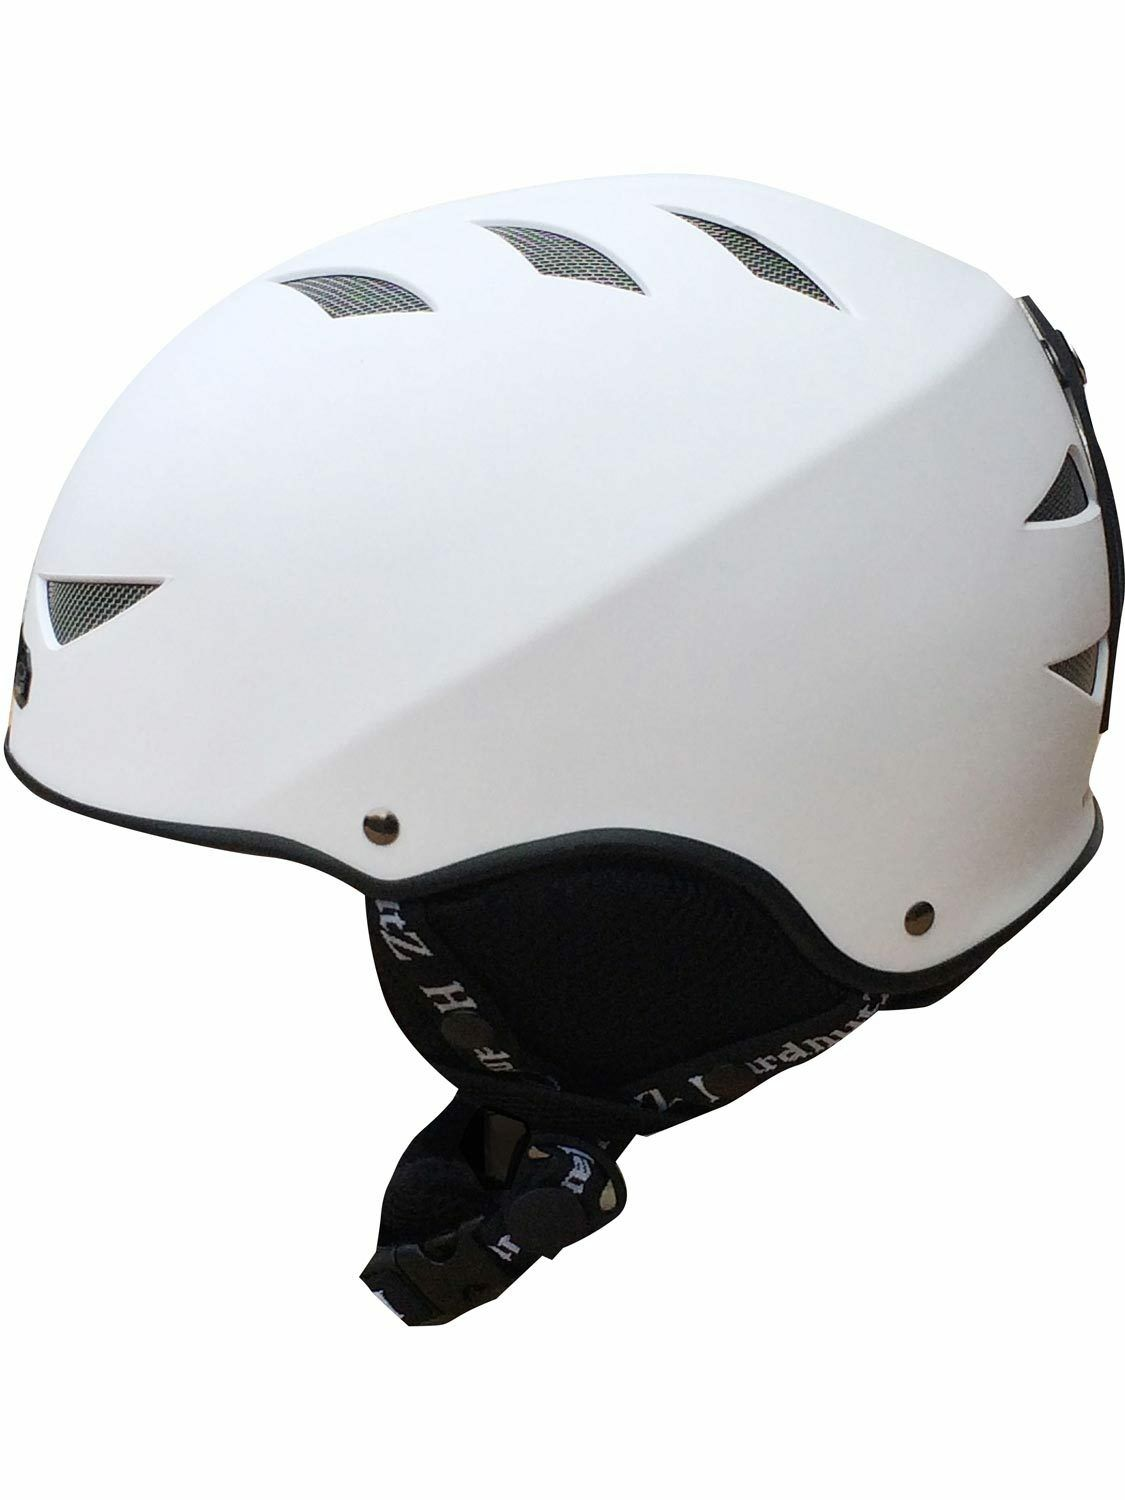 Hardnutz Ski Helmet White Adult & Kids Sizes Rubber Ski Helmet Snowboard New